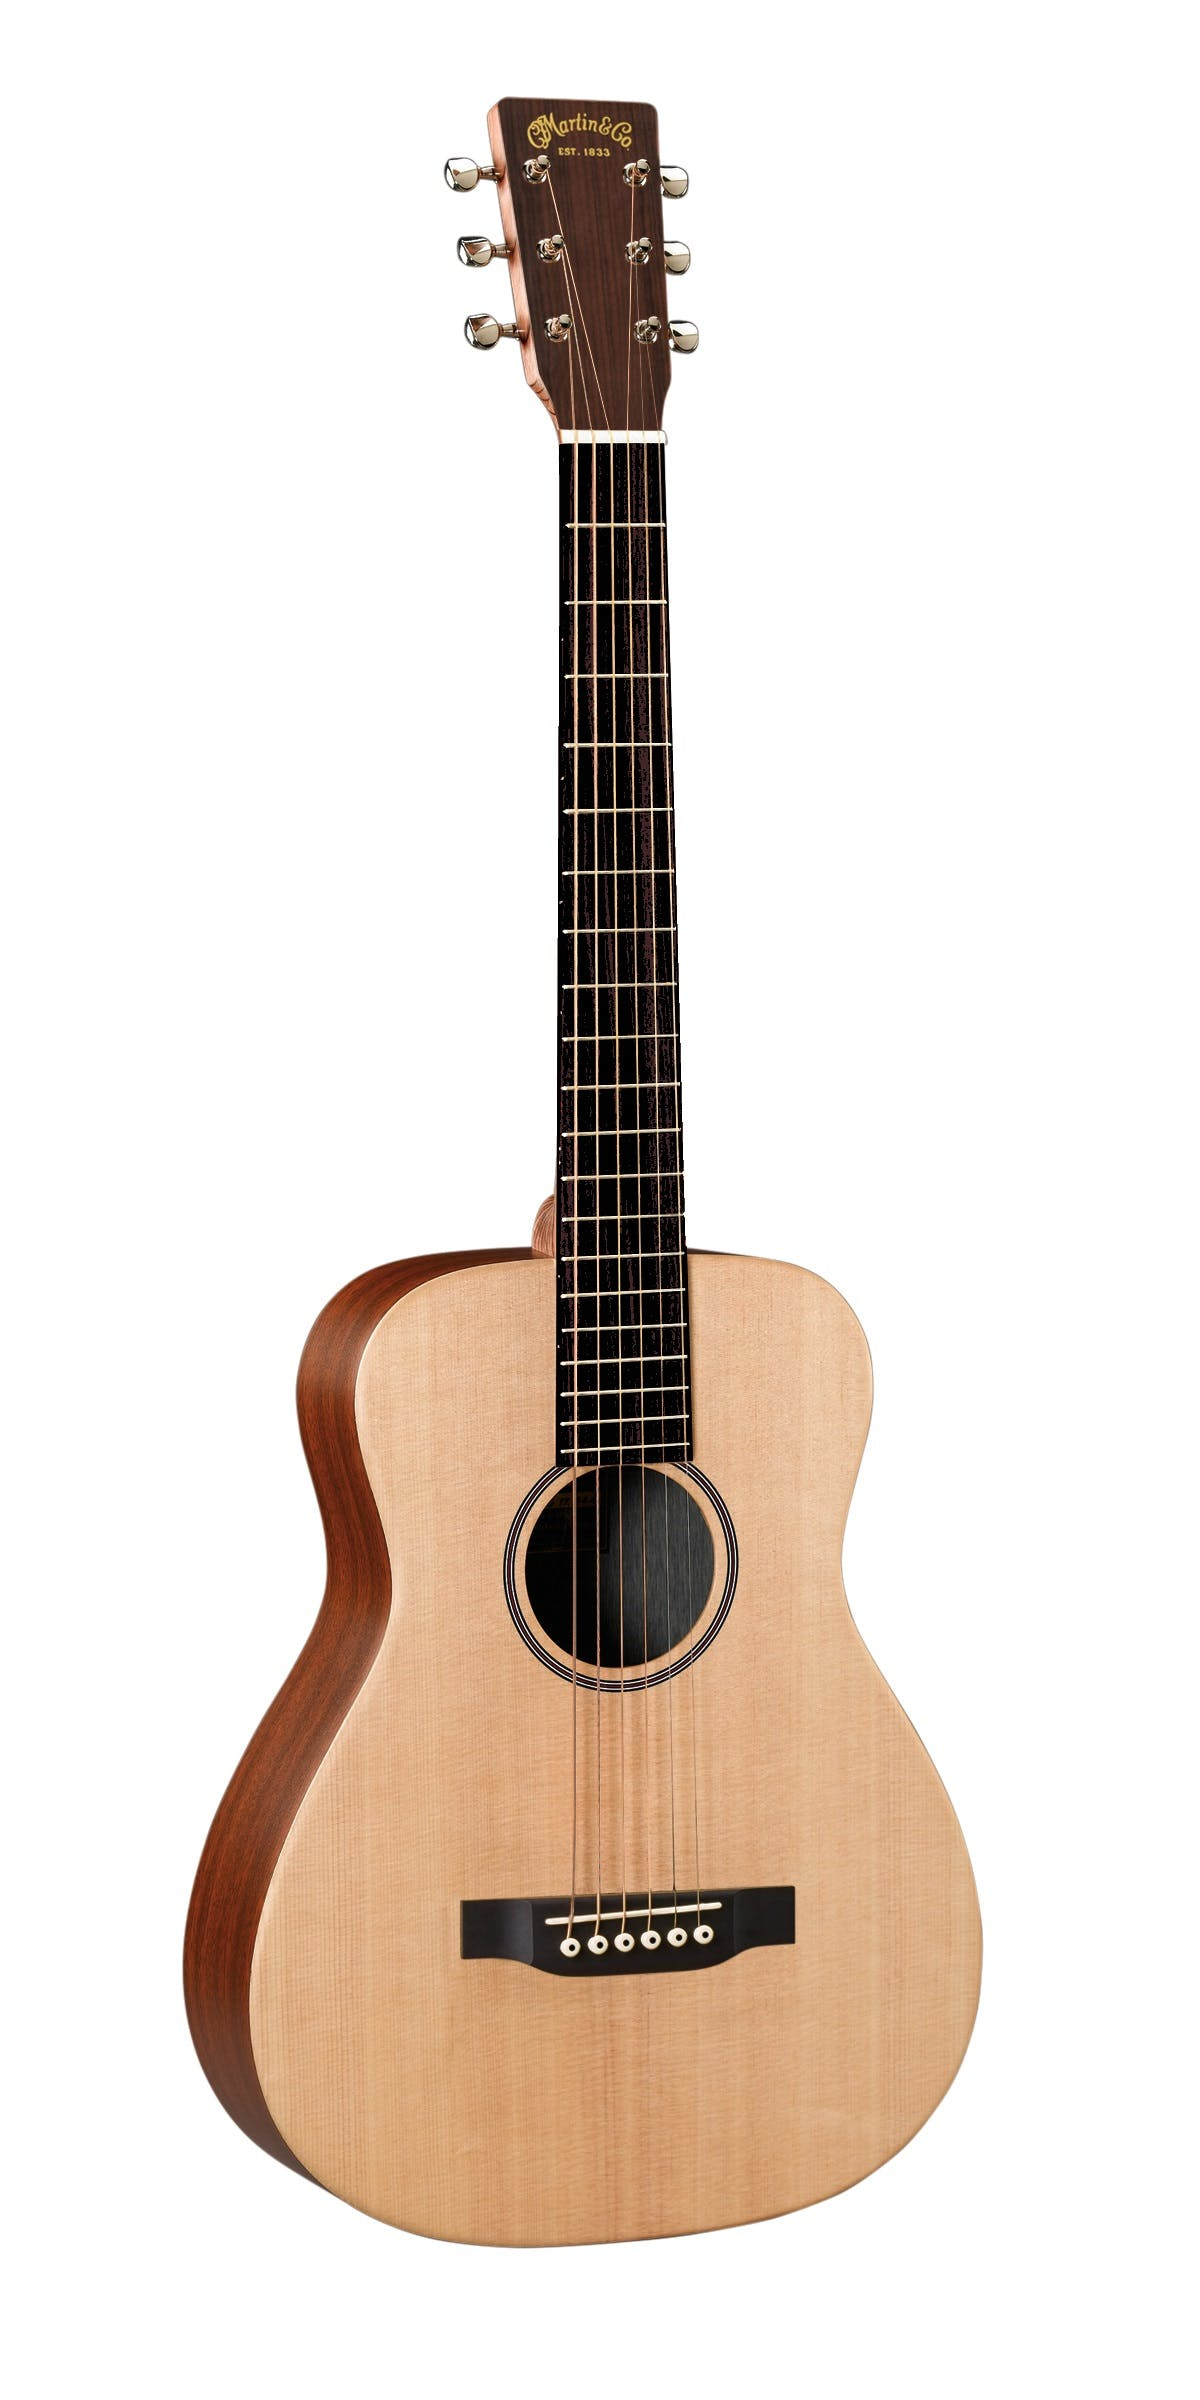 Martin LX1 Little Martin Acoustic Guitar - Andertons Music Co